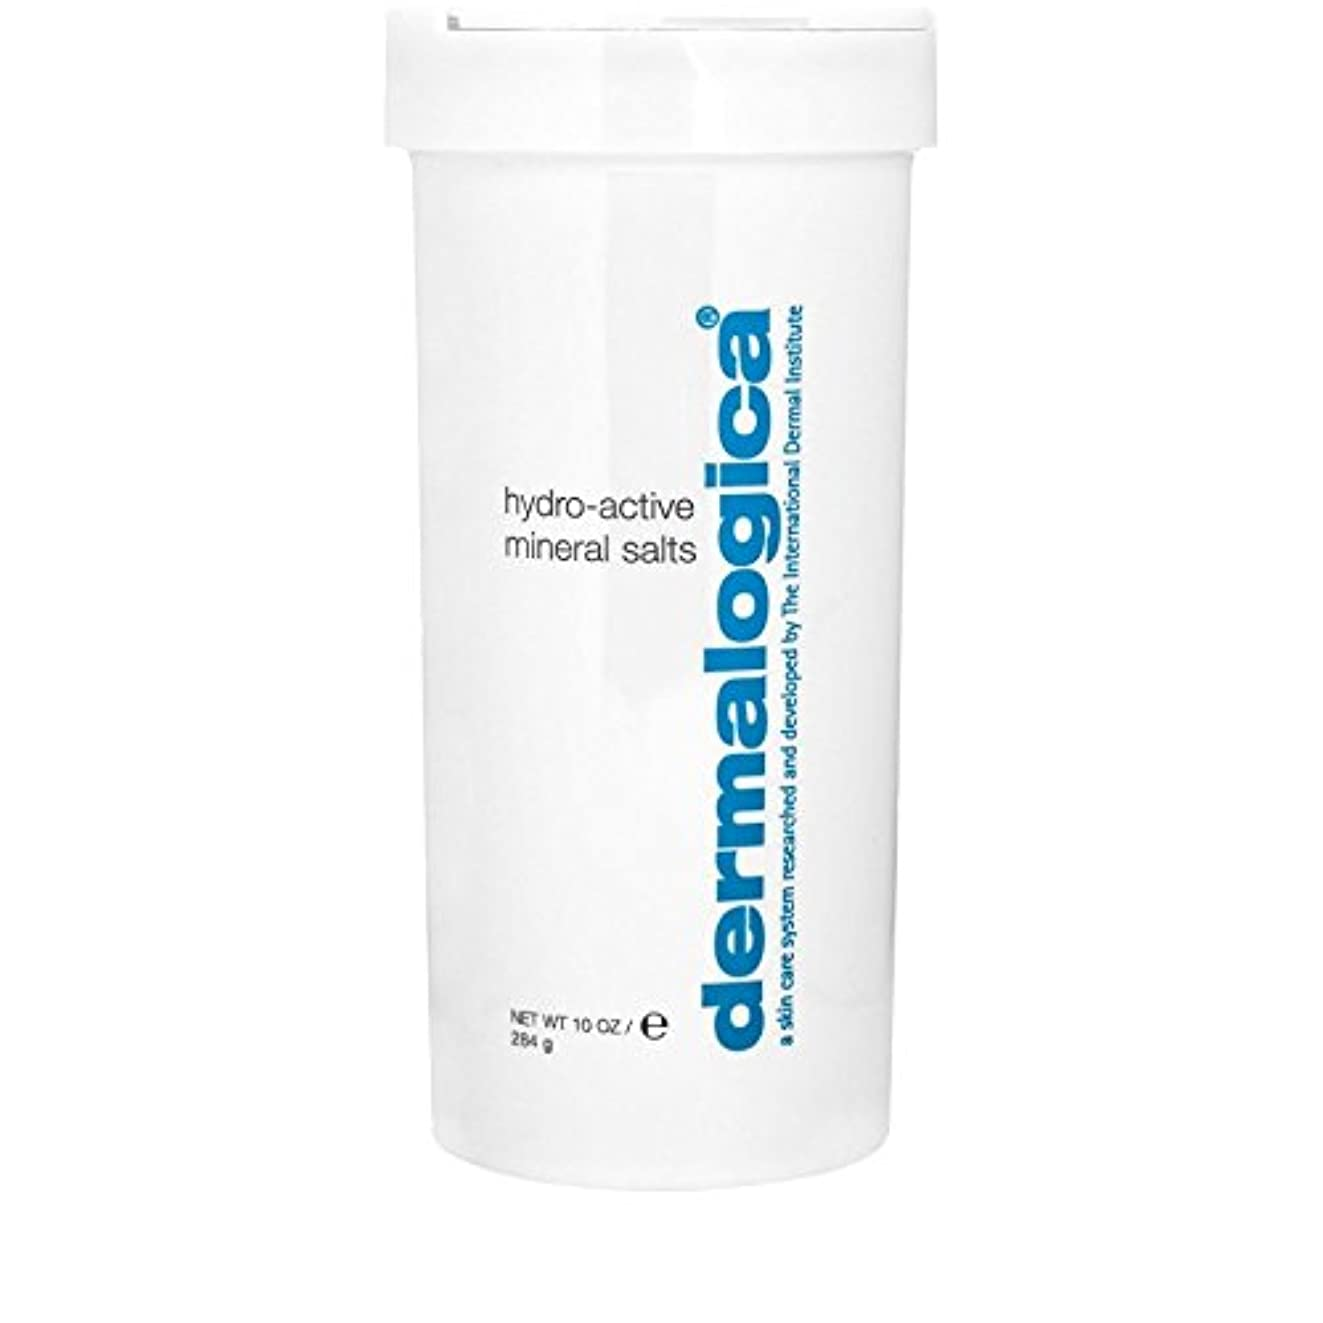 Dermalogica Hydro Active Mineral Salt 284g (Pack of 6) - ダーマロジカ水力アクティブミネラル塩284グラム x6 [並行輸入品]